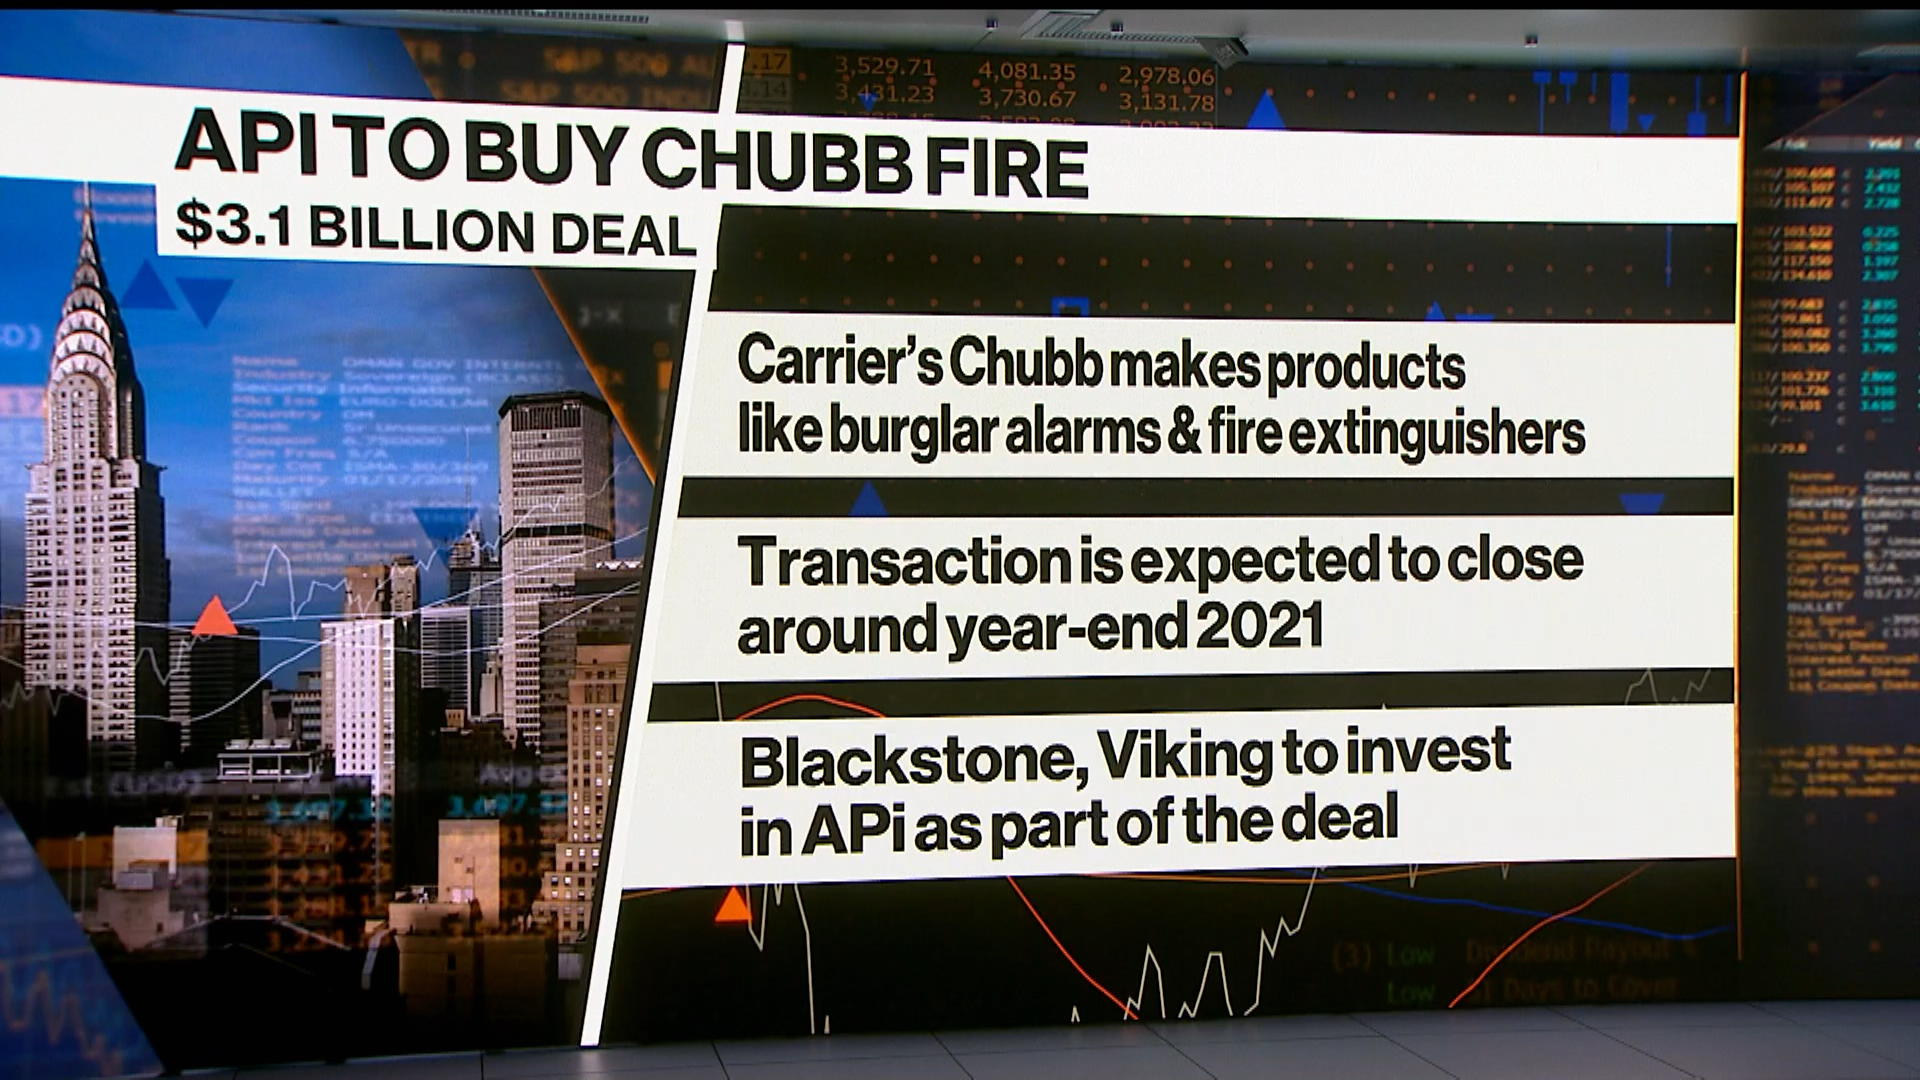 Why APi Group Made $3.1B Deal for Carrier's Chubb